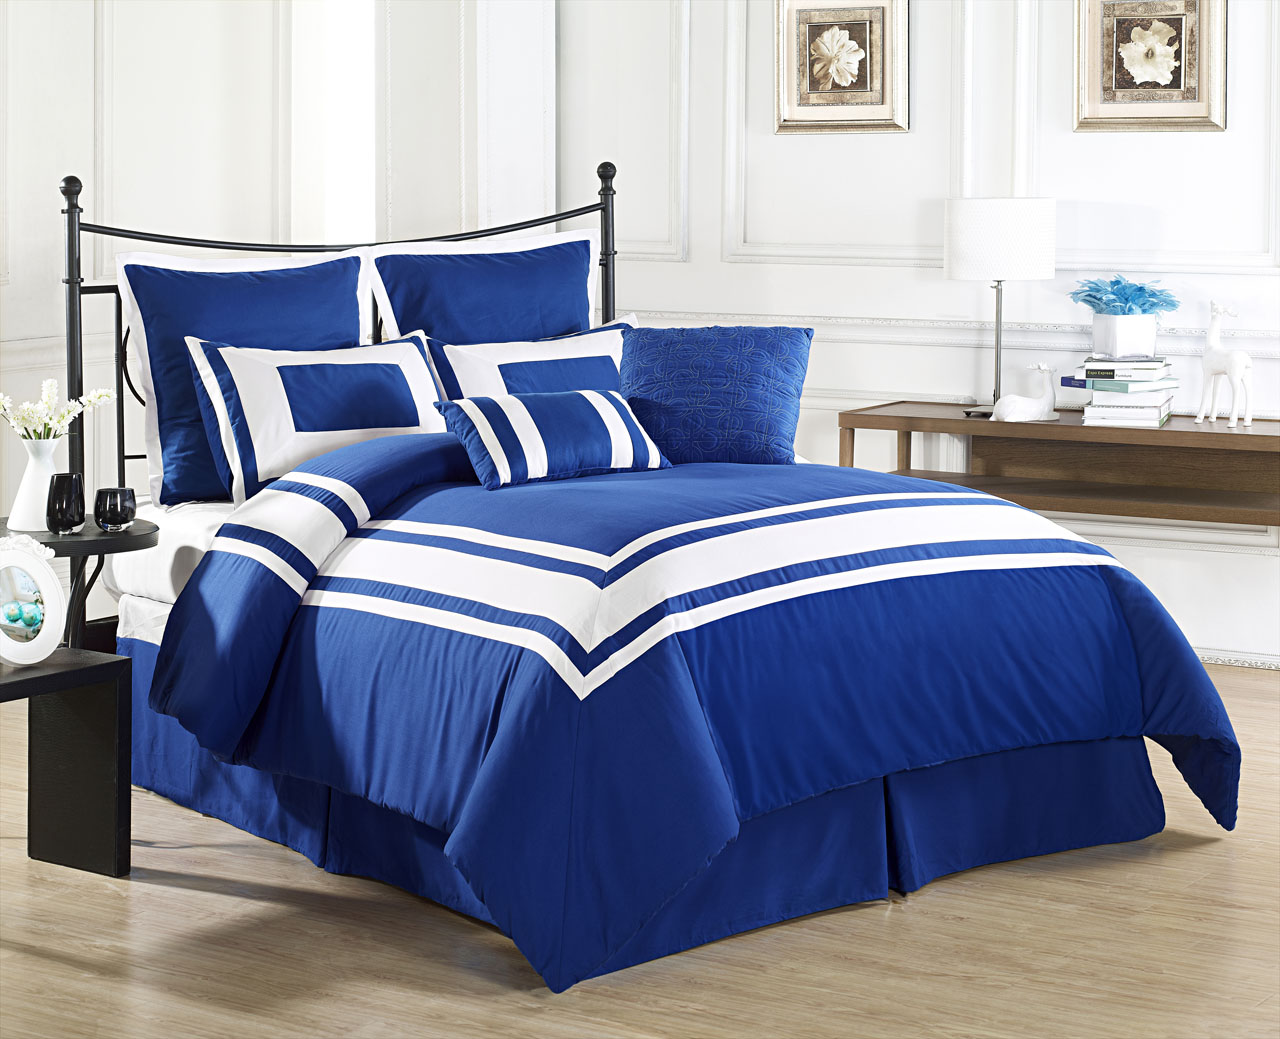 Blue bedspreads and comforters - 8 Piece King Lux Decor Royal Blue Comforter Set